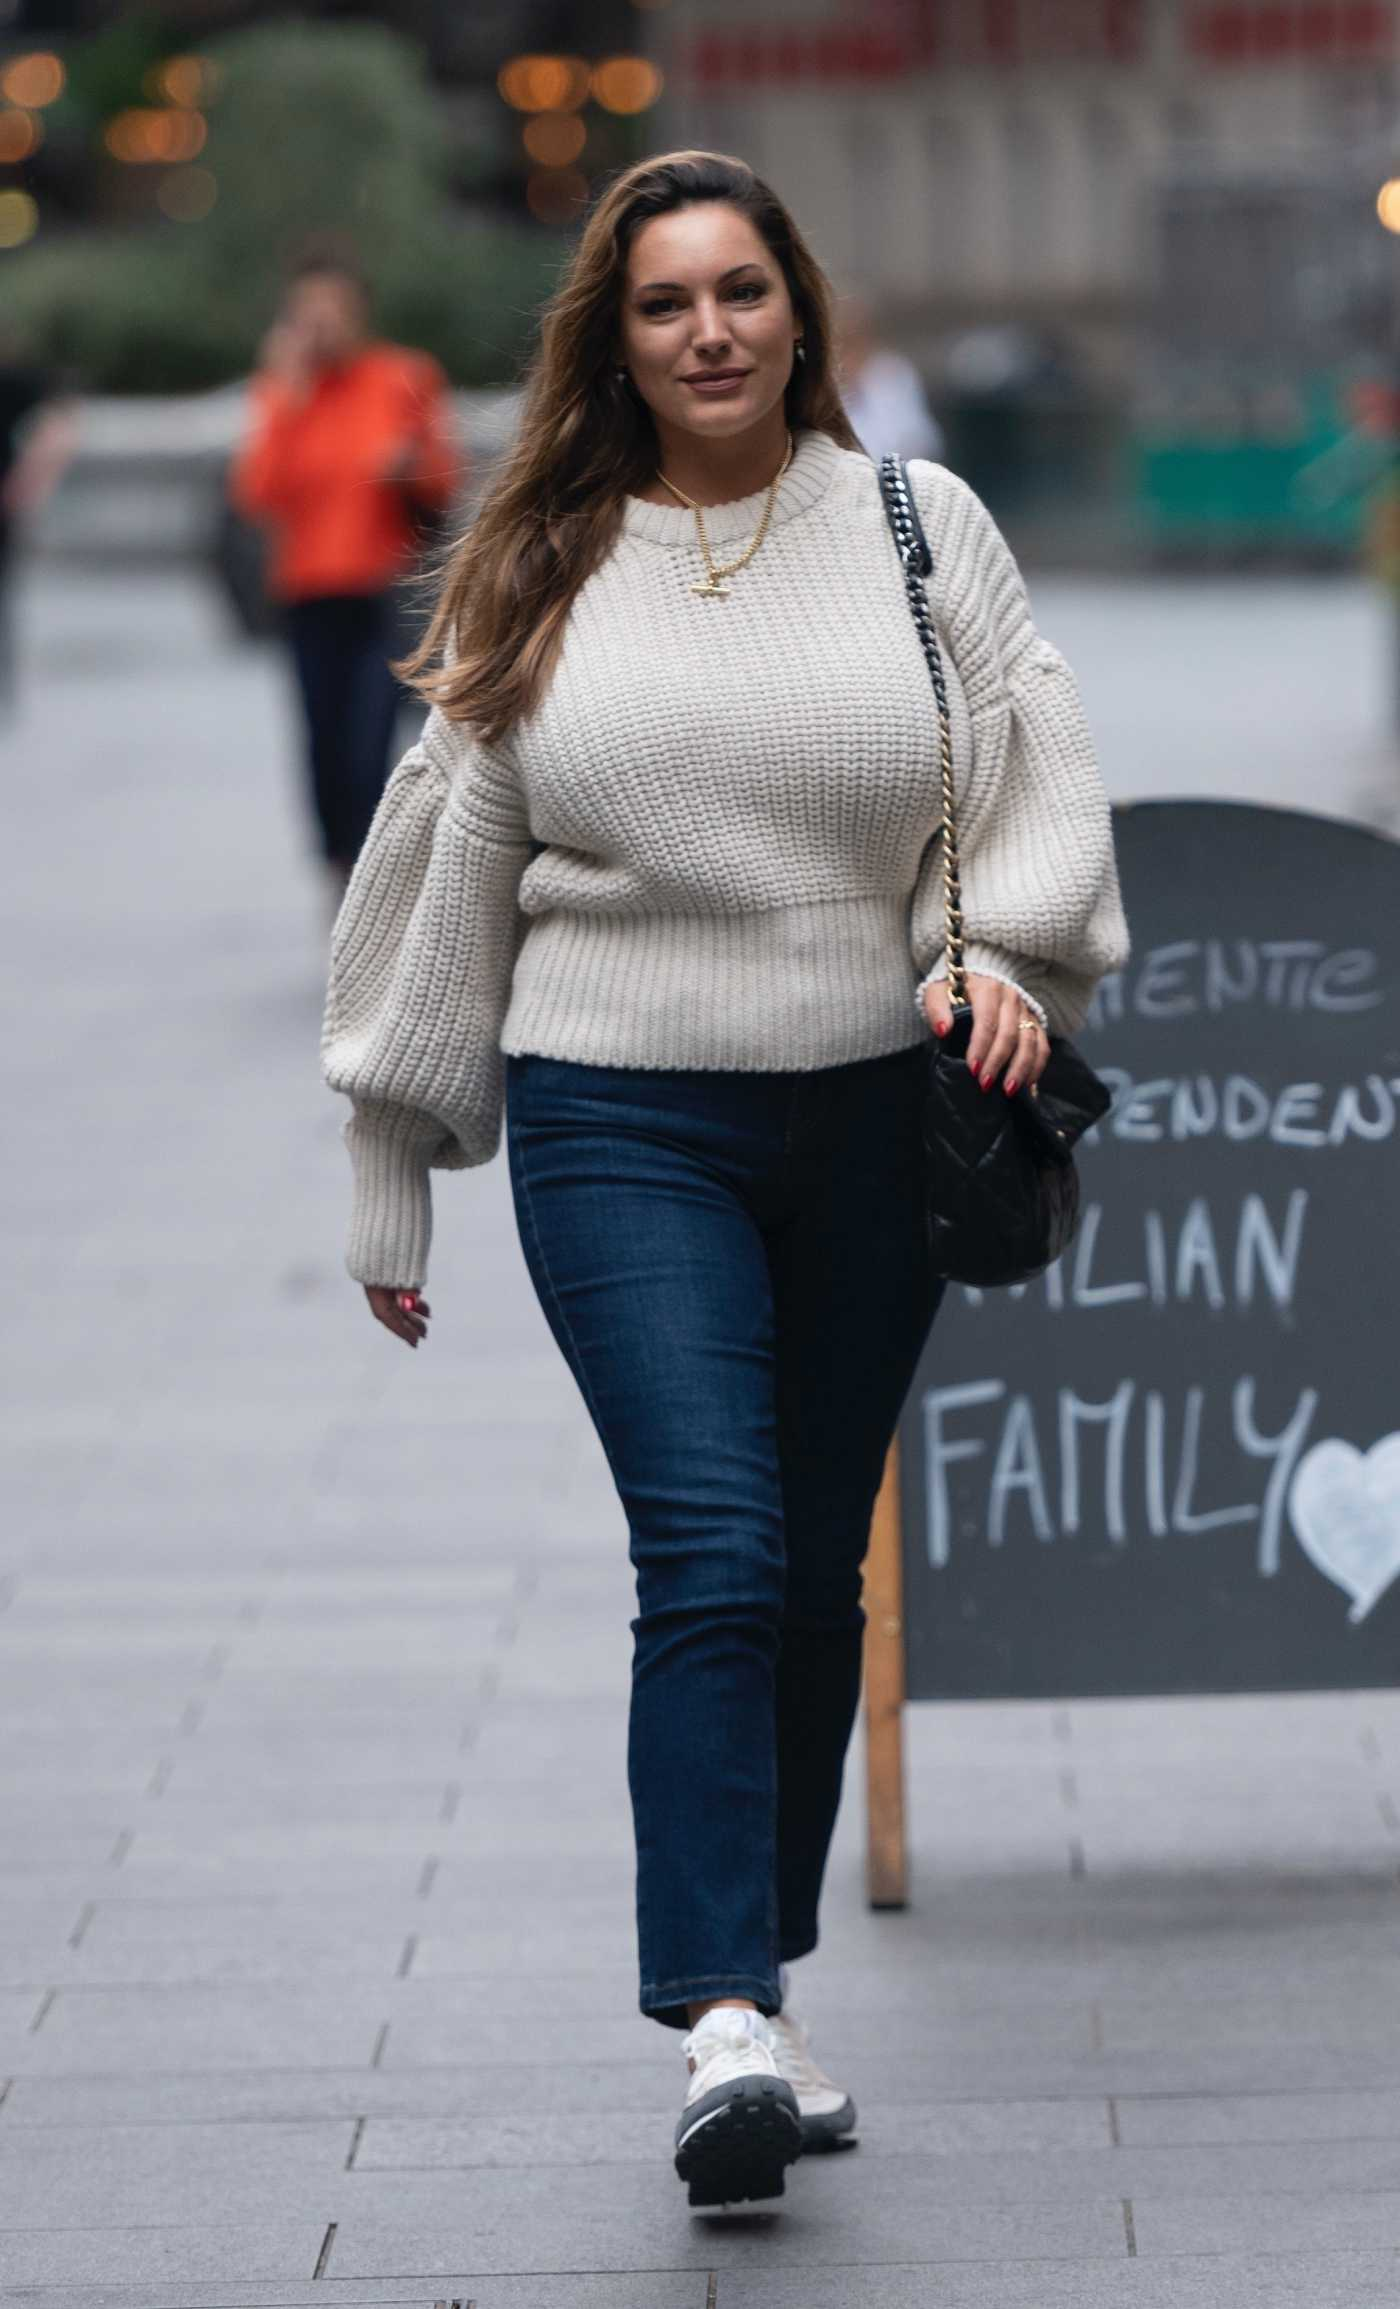 Kelly Brook in a Beige Sweater Arrives at the Global Radio in London 09/23/2020